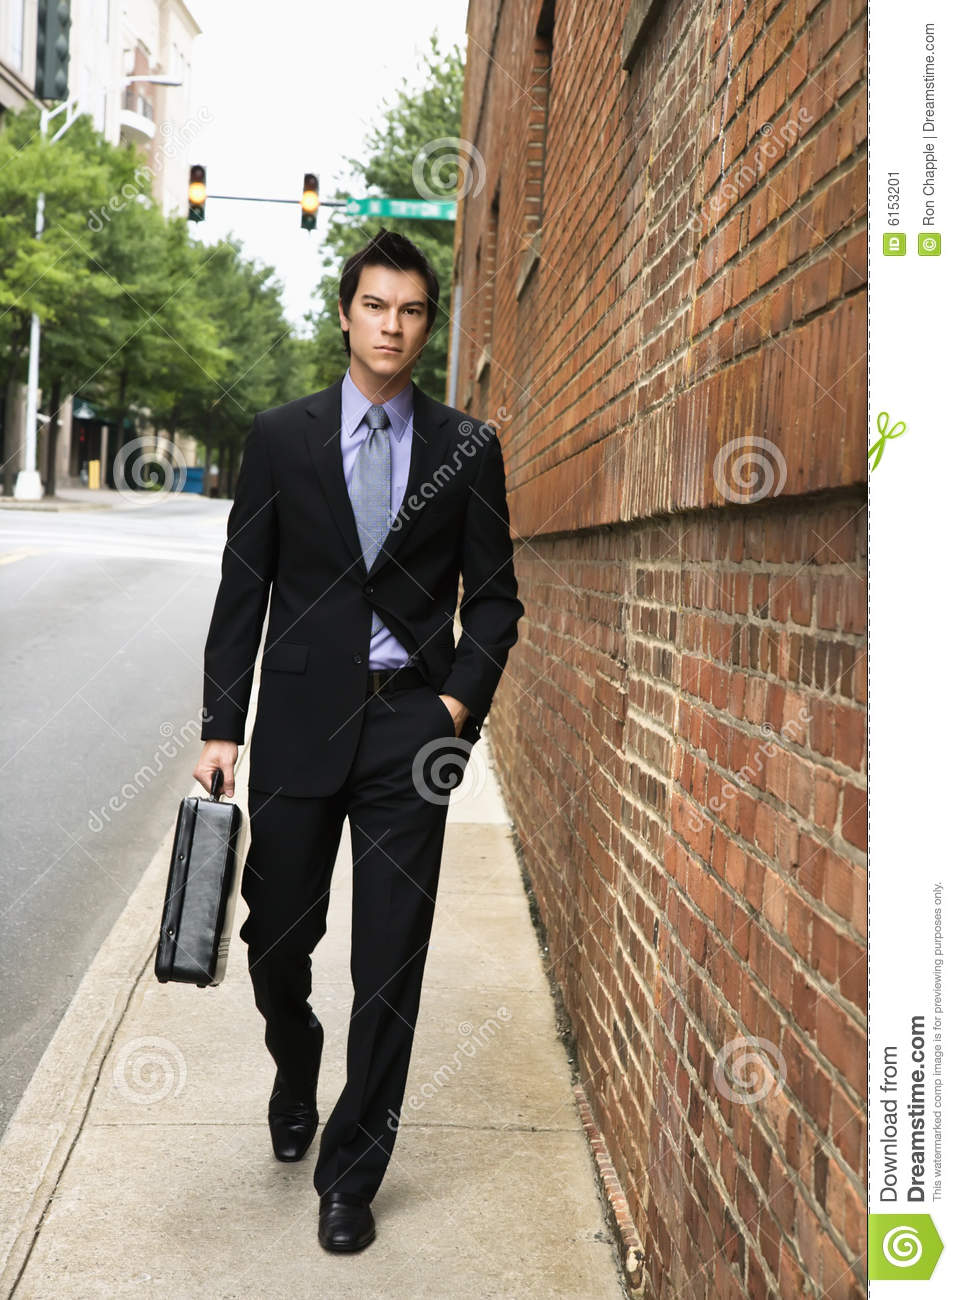 Business People Walking In A City Stock Photo - Image of ...  |Person Walking City